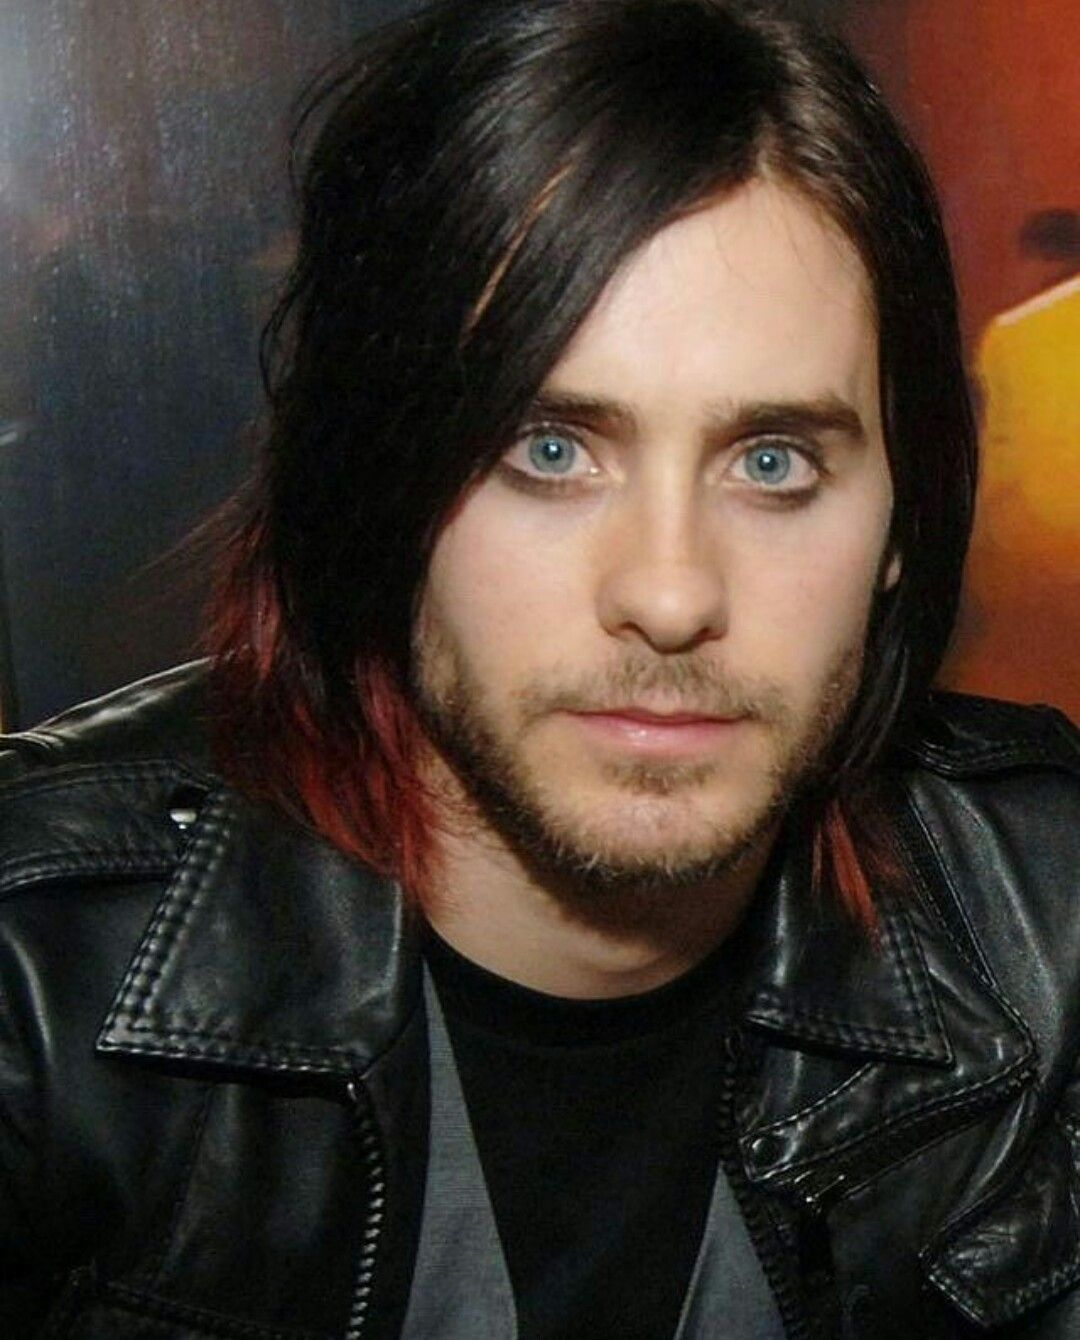 Pin By Panther Panther On Jared Leto Best Looks Jared Leto Long Hair Jared Leto Jared